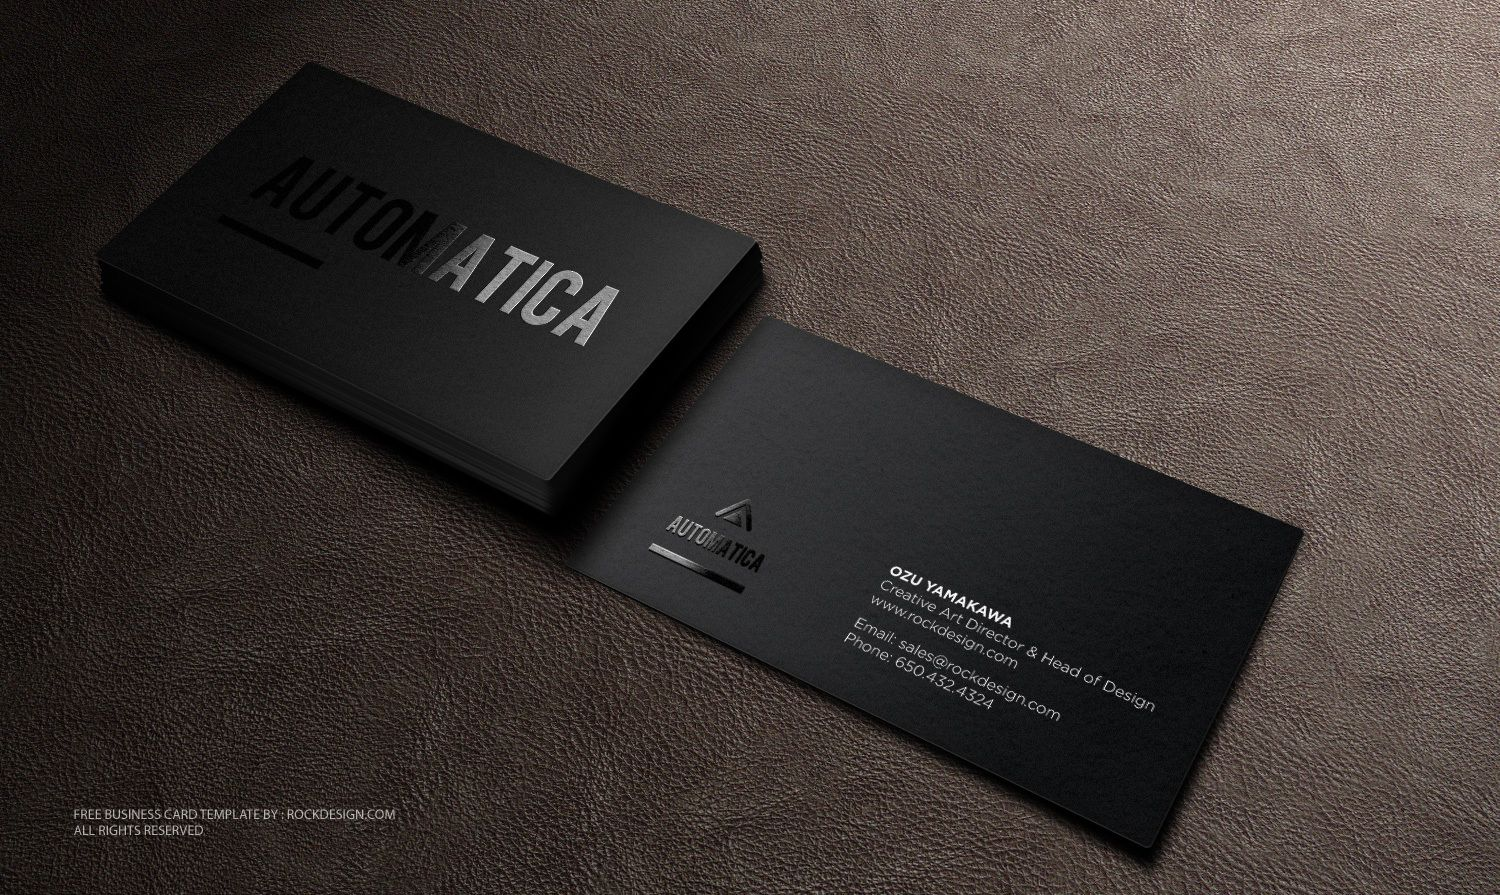 Black business card template download free design templates free business card templates for rockdesign print customers order a professional business card template online choose from our wide selection of business fbccfo Gallery